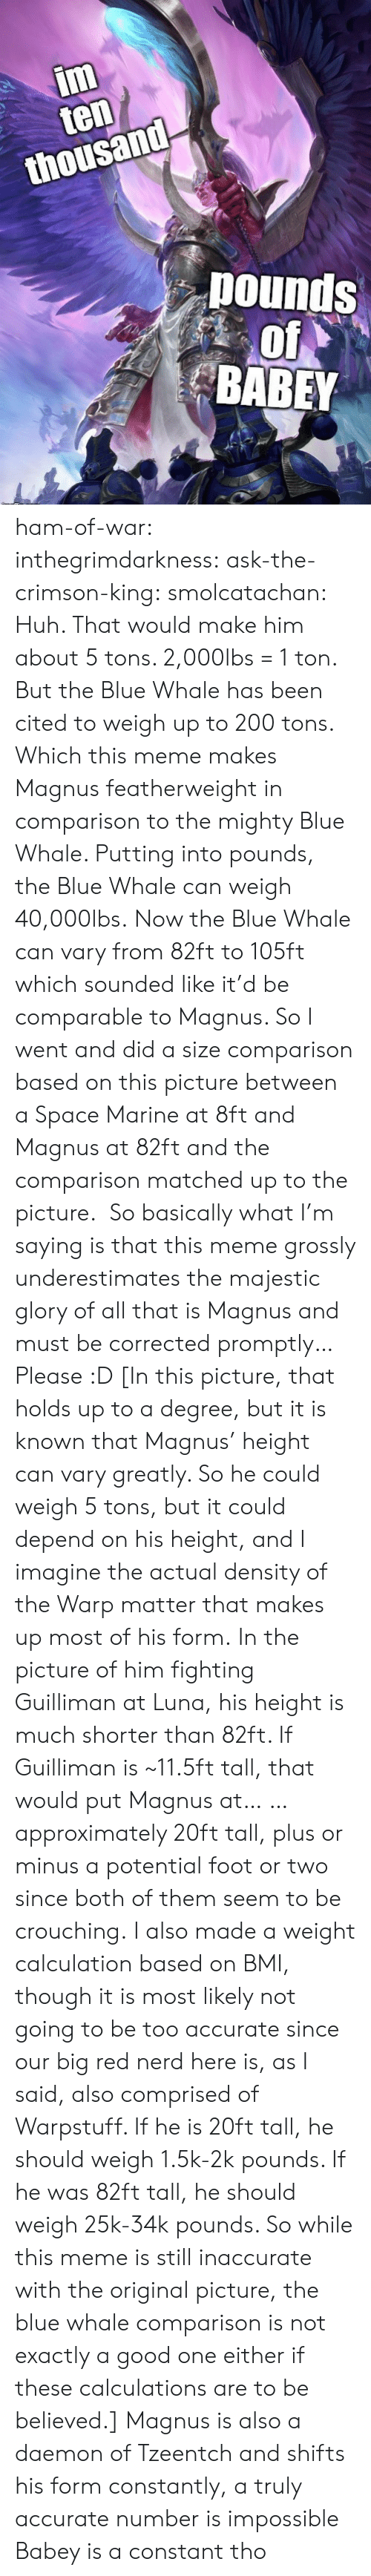 promptly: im  ten  thousand  pounds  of  BABEY ham-of-war: inthegrimdarkness:   ask-the-crimson-king:   smolcatachan:  Huh. That would make him about 5 tons. 2,000lbs = 1 ton. But the Blue Whale has been cited to weigh up to 200 tons. Which this meme makes Magnus featherweight in comparison to the mighty Blue Whale. Putting into pounds, the Blue Whale can weigh 40,000lbs. Now the Blue Whale can vary from 82ft to 105ft which sounded like it'd be comparable to Magnus. So I went and did a size comparison based on this picture between a Space Marine at 8ft and Magnus at 82ft and the comparison matched up to the picture.  So basically what I'm saying is that this meme grossly underestimates the majestic glory of all that is Magnus and must be corrected promptly…Please :D  [In this picture, that holds up to a degree, but it is known that Magnus' height can vary greatly. So he could weigh 5 tons, but it could depend on his height, and I imagine the actual density of the Warp matter that makes up most of his form. In the picture of him fighting Guilliman at Luna, his height is much shorter than 82ft. If Guilliman is ~11.5ft tall, that would put Magnus at… … approximately 20ft tall, plus or minus a potential foot or two since both of them seem to be crouching. I also made a weight calculation based on BMI, though it is most likely not going to be too accurate since our big red nerd here is, as I said, also comprised of Warpstuff. If he is 20ft tall, he should weigh 1.5k-2k pounds. If he was 82ft tall, he should weigh 25k-34k pounds. So while this meme is still inaccurate with the original picture, the blue whale comparison is not exactly a good one either if these calculations are to be believed.]   Magnus is also a daemon of Tzeentch and shifts his form constantly, a truly accurate number is impossible    Babey is a constant tho